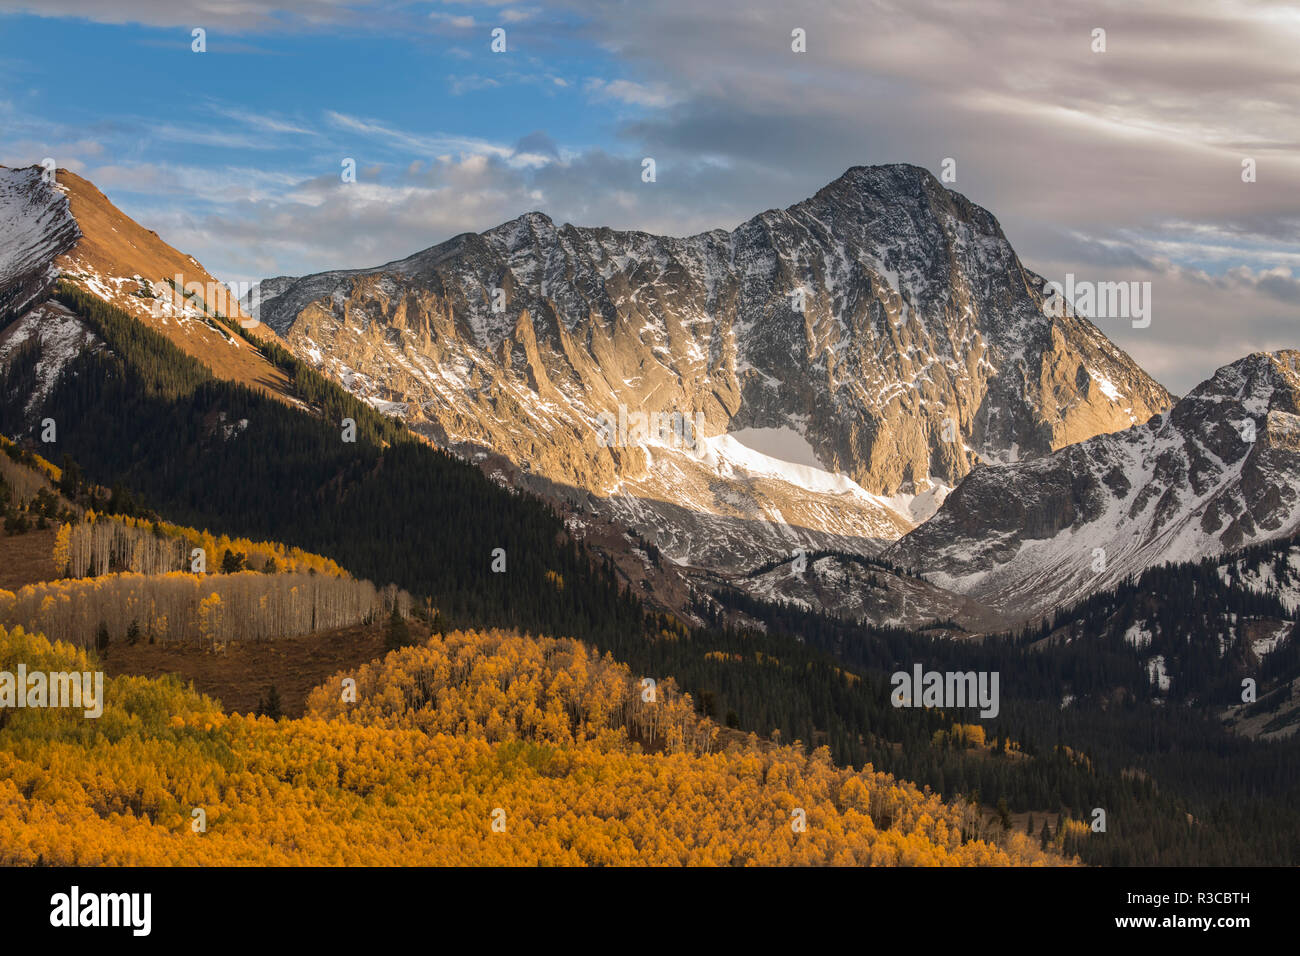 USA, Colorado, Maroon Bells-Snowmass Wilderness. Capitol Peak and aspen forest landscape. - Stock Image